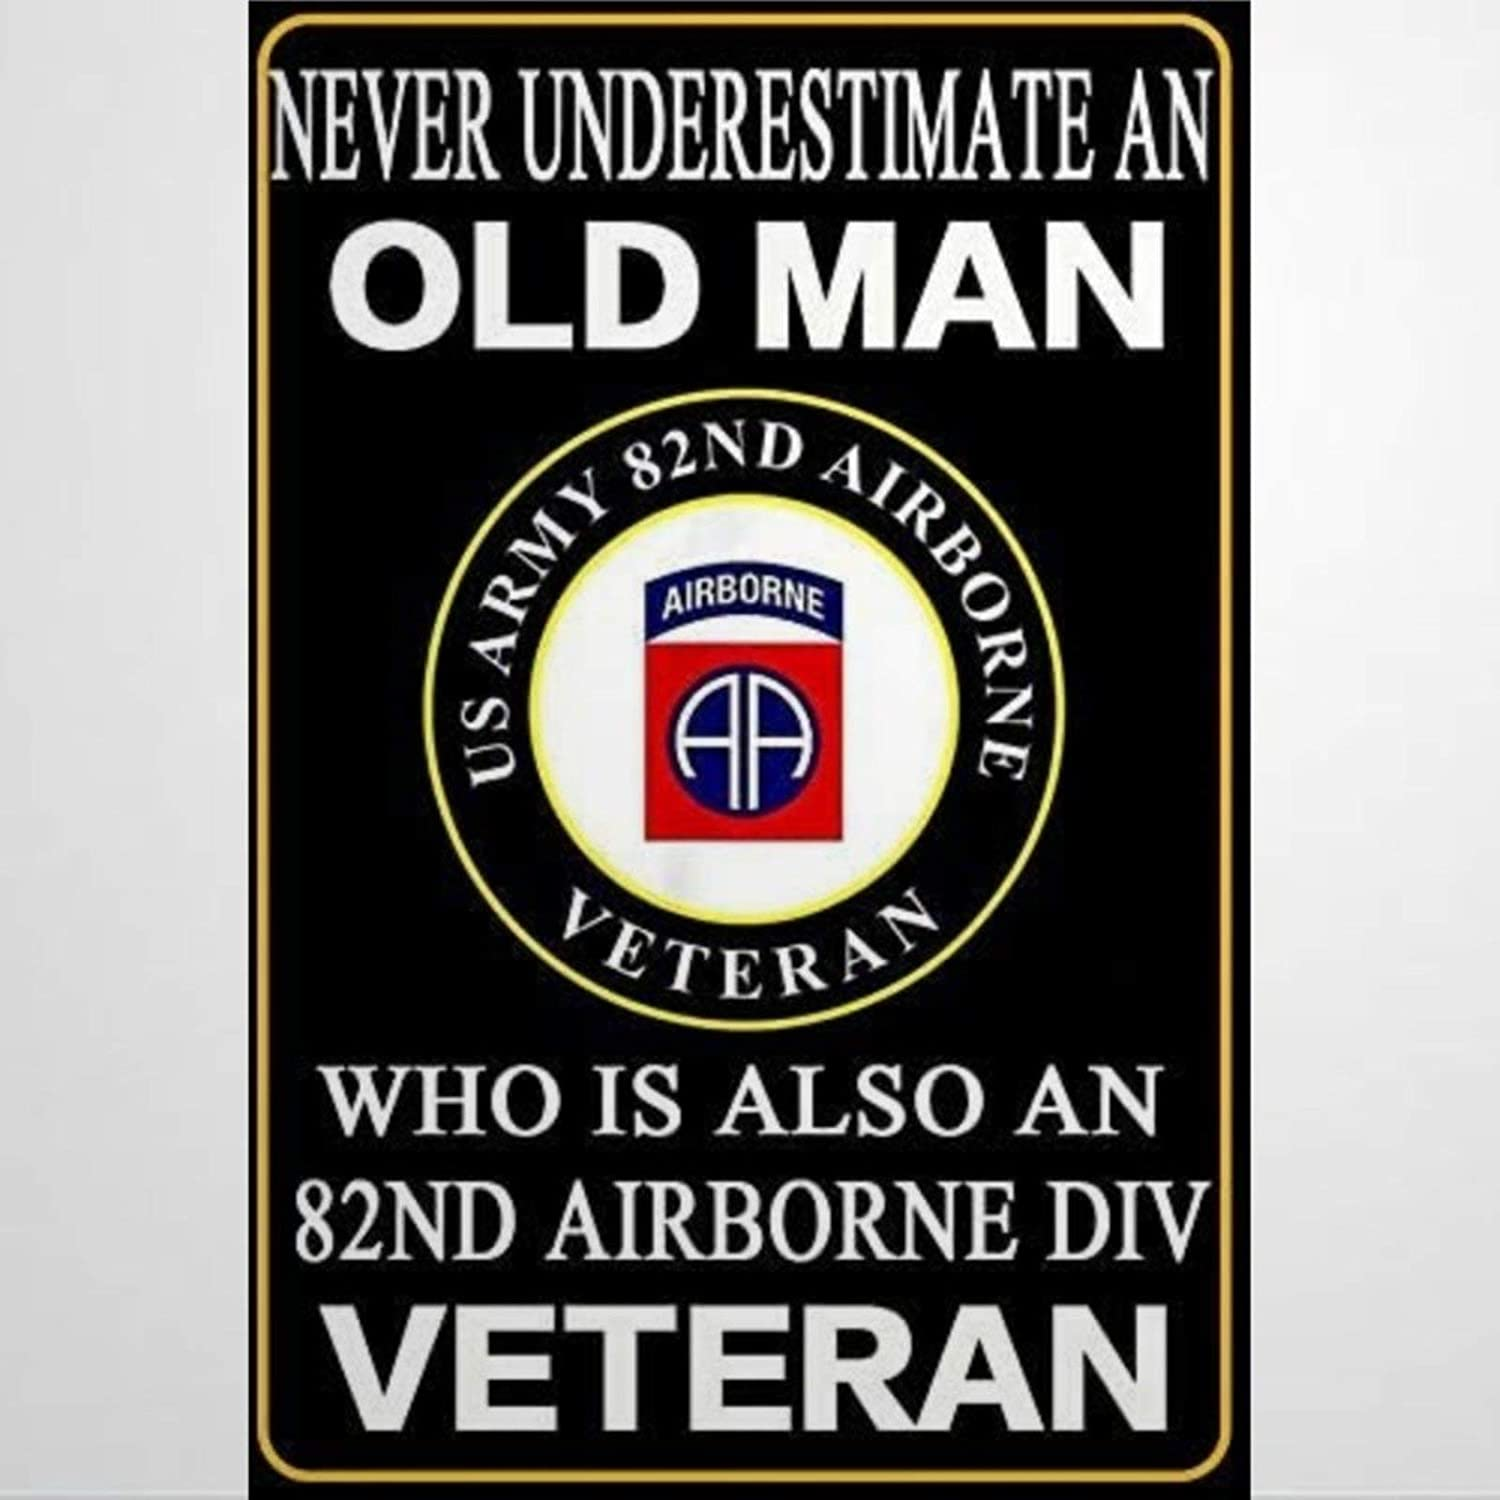 BYRON HOYLE 82nd Airborne Division Metal Sign,Vintage Tin Plaque,Yard Sign Wall Hanging Art,Rustic Wall Decor for Home Garage Coffee Bar Pub Farmhouse Living Room